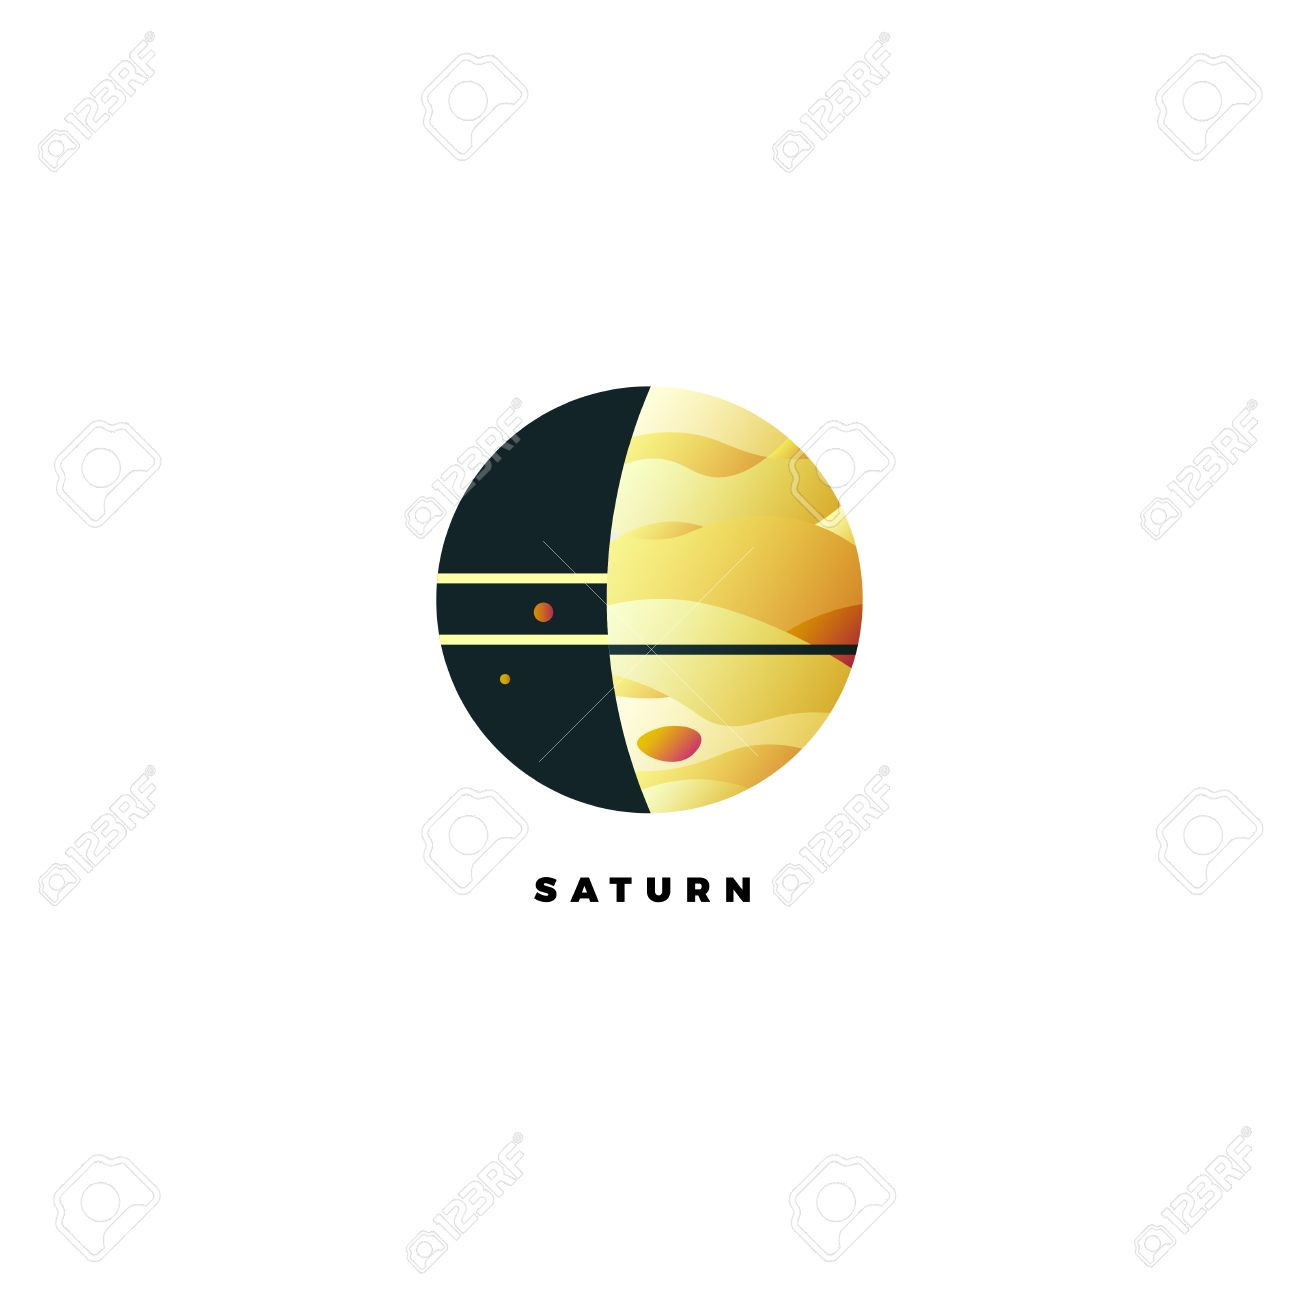 Saturn Vector Logo Design Template Of Planet With Rings Company